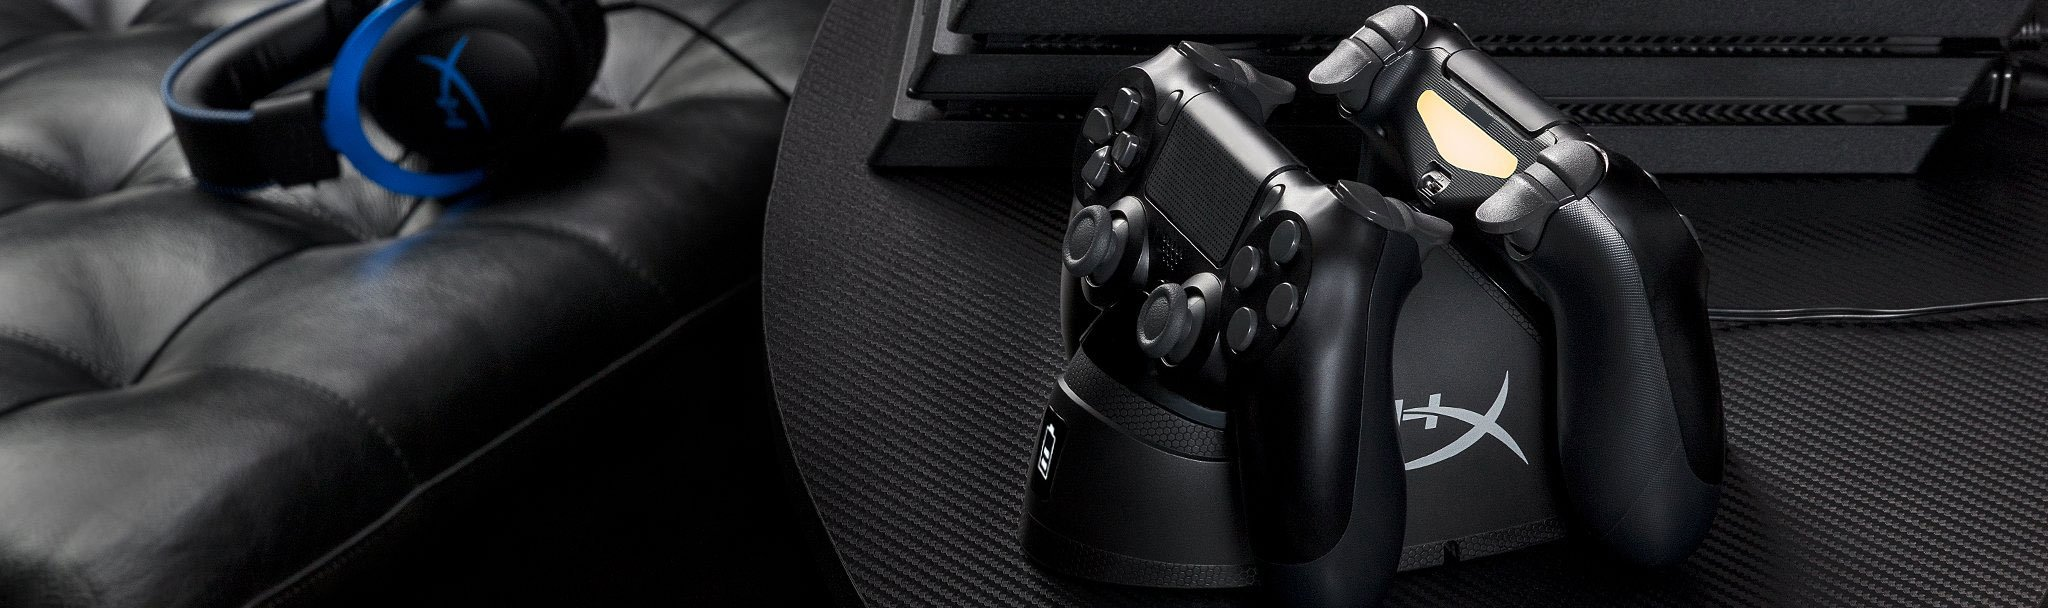 Somehow plugging your headphones into your PS4 controller can turn off your TV. Solve that.